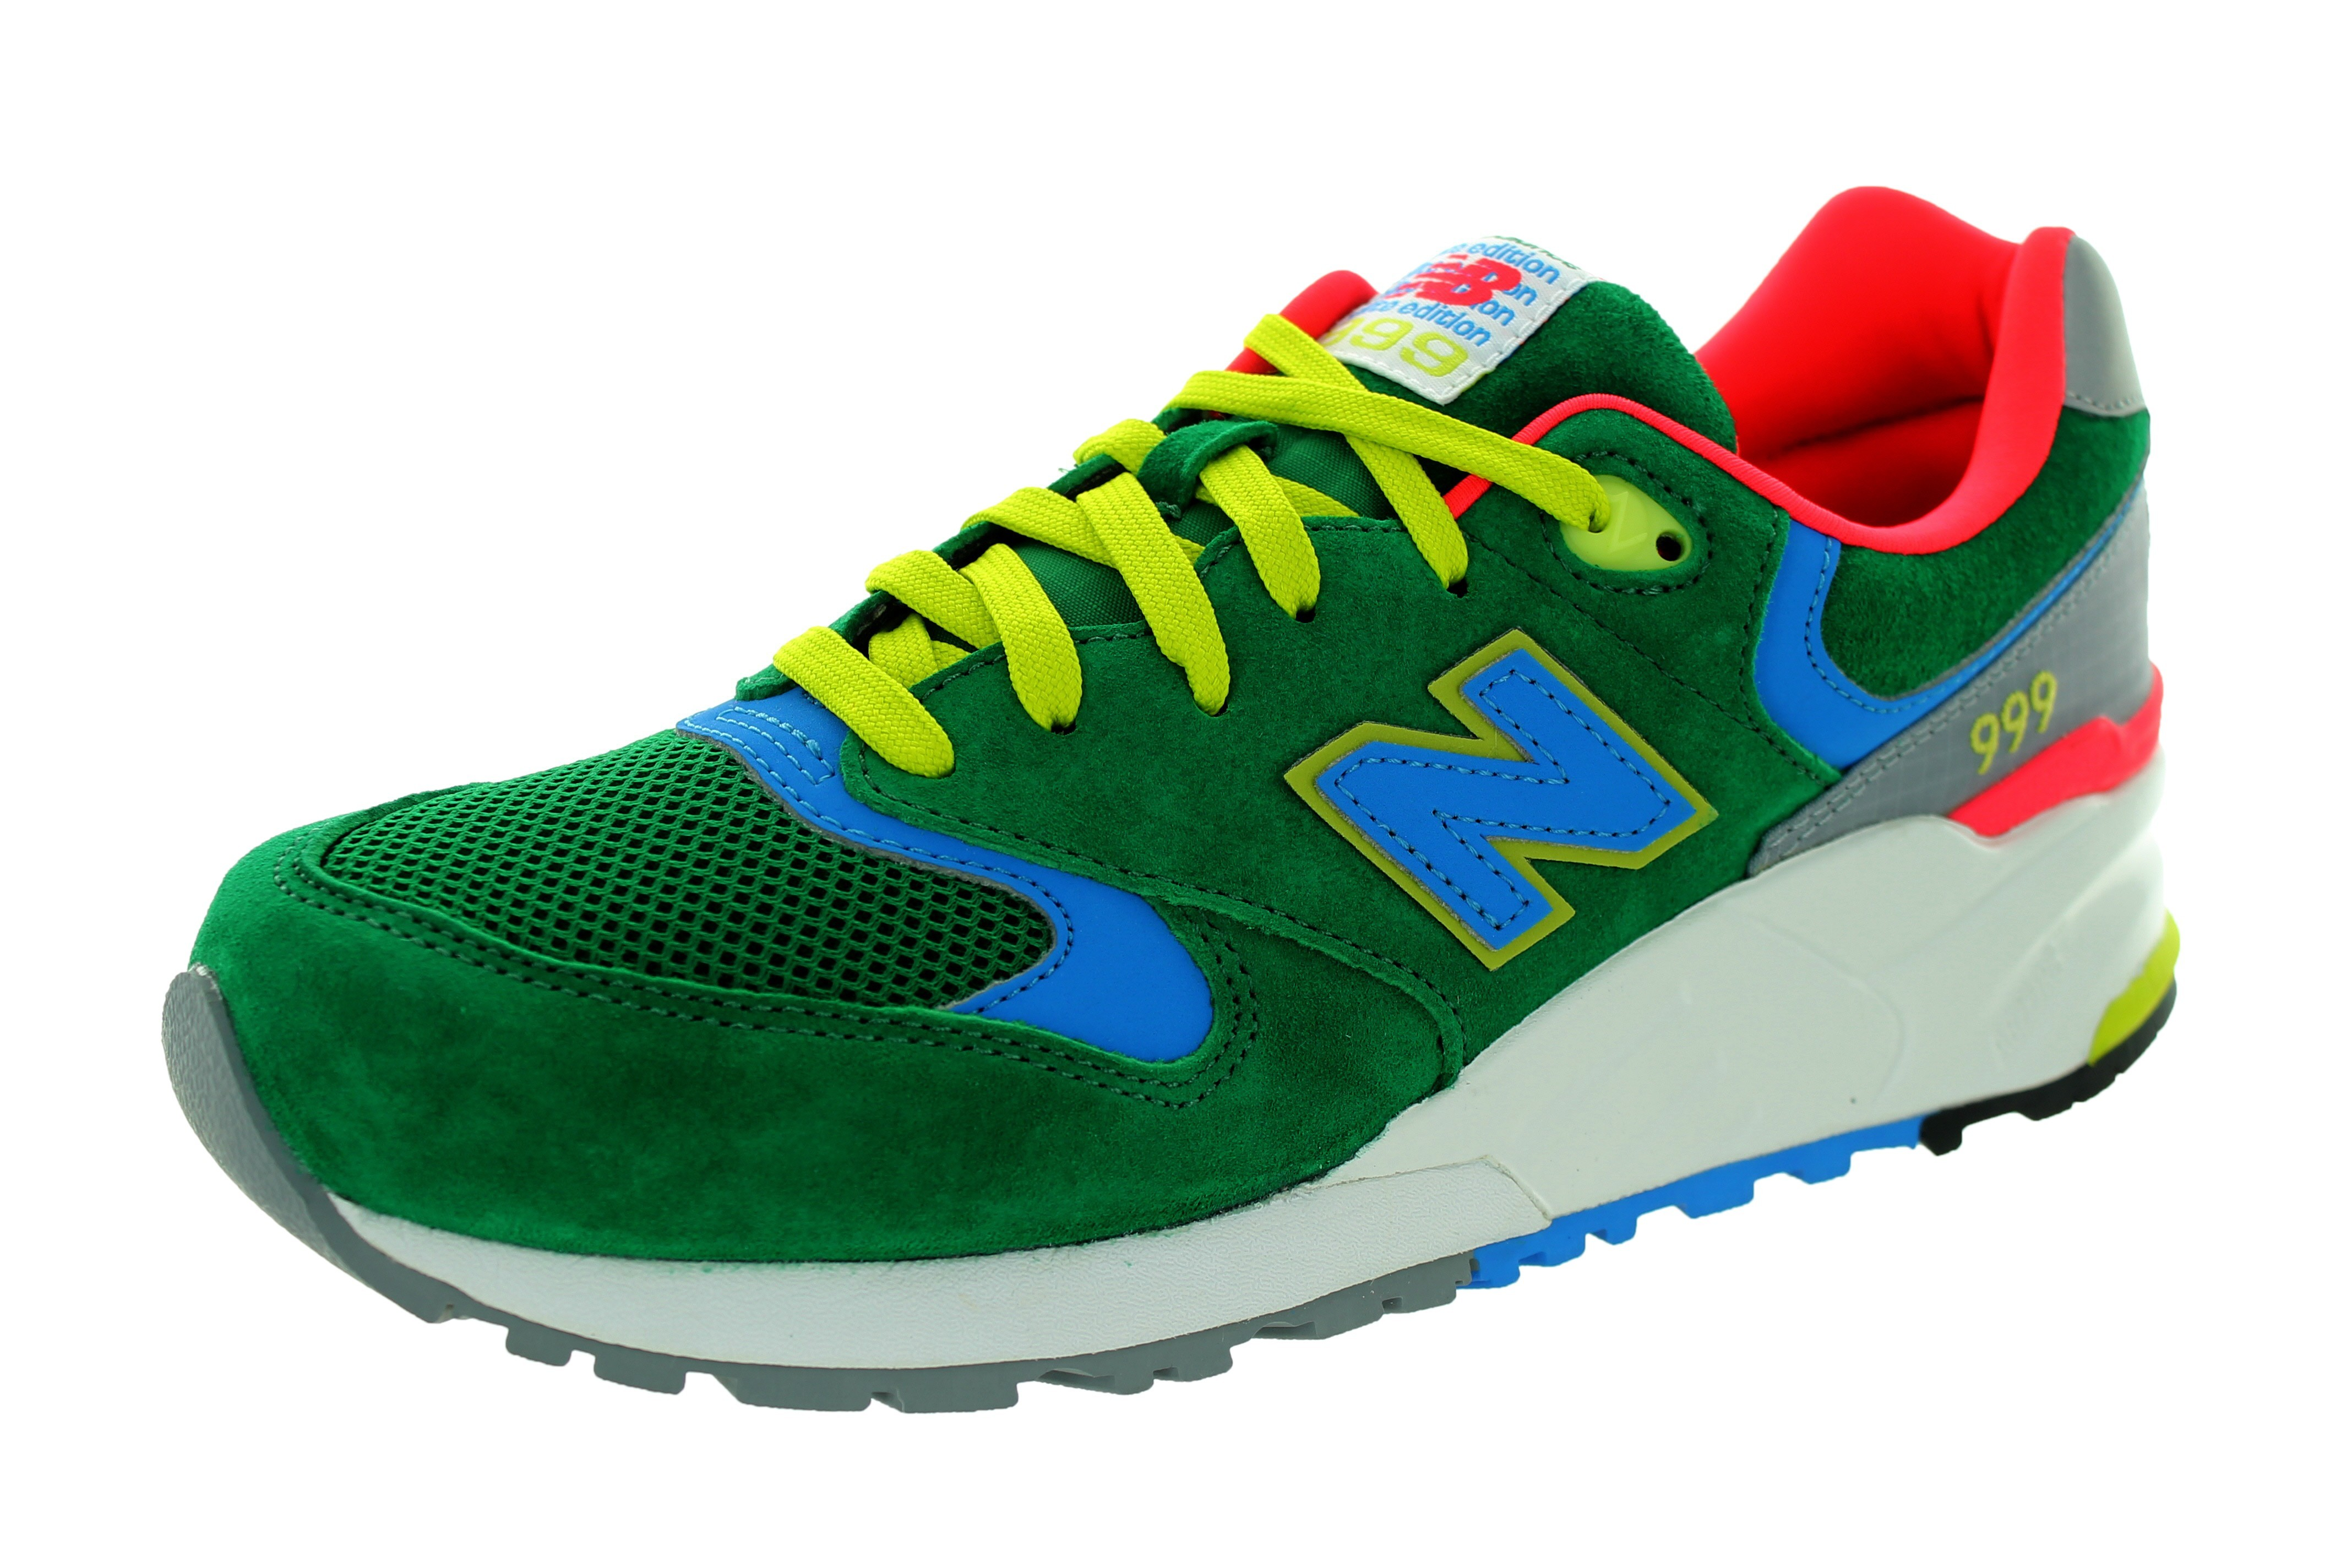 New Balance 999 ML999PN Pinball Mens Shoes Green Coral Orange Pink Blue Lime Green Grey Off White